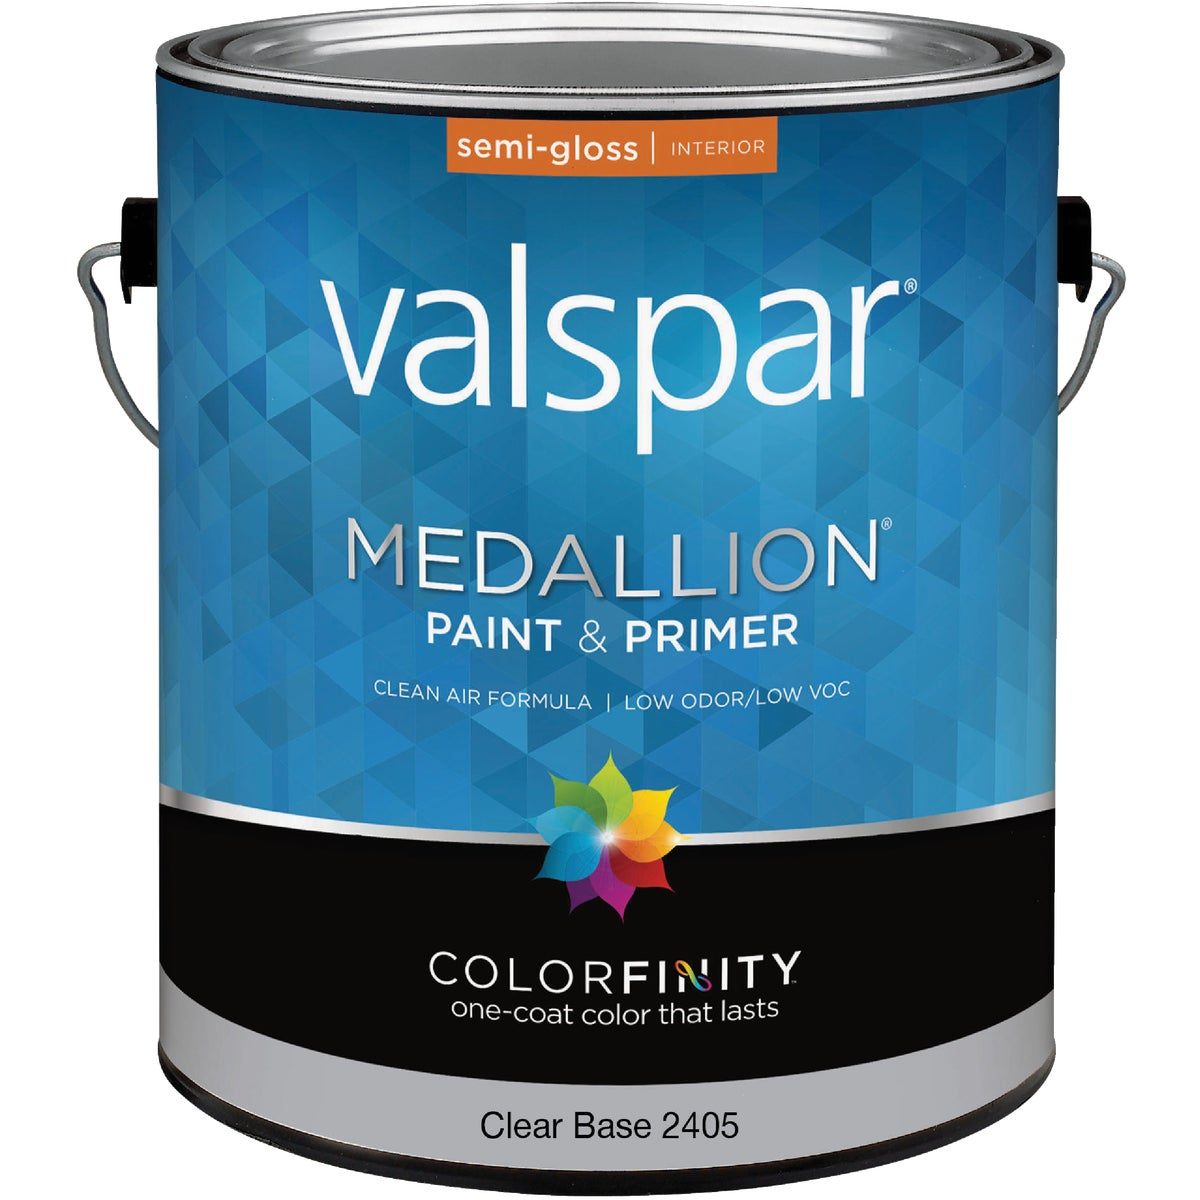 INT S/G CLEAR BS PAINT - 027.0002405.007 by Valspar Corp